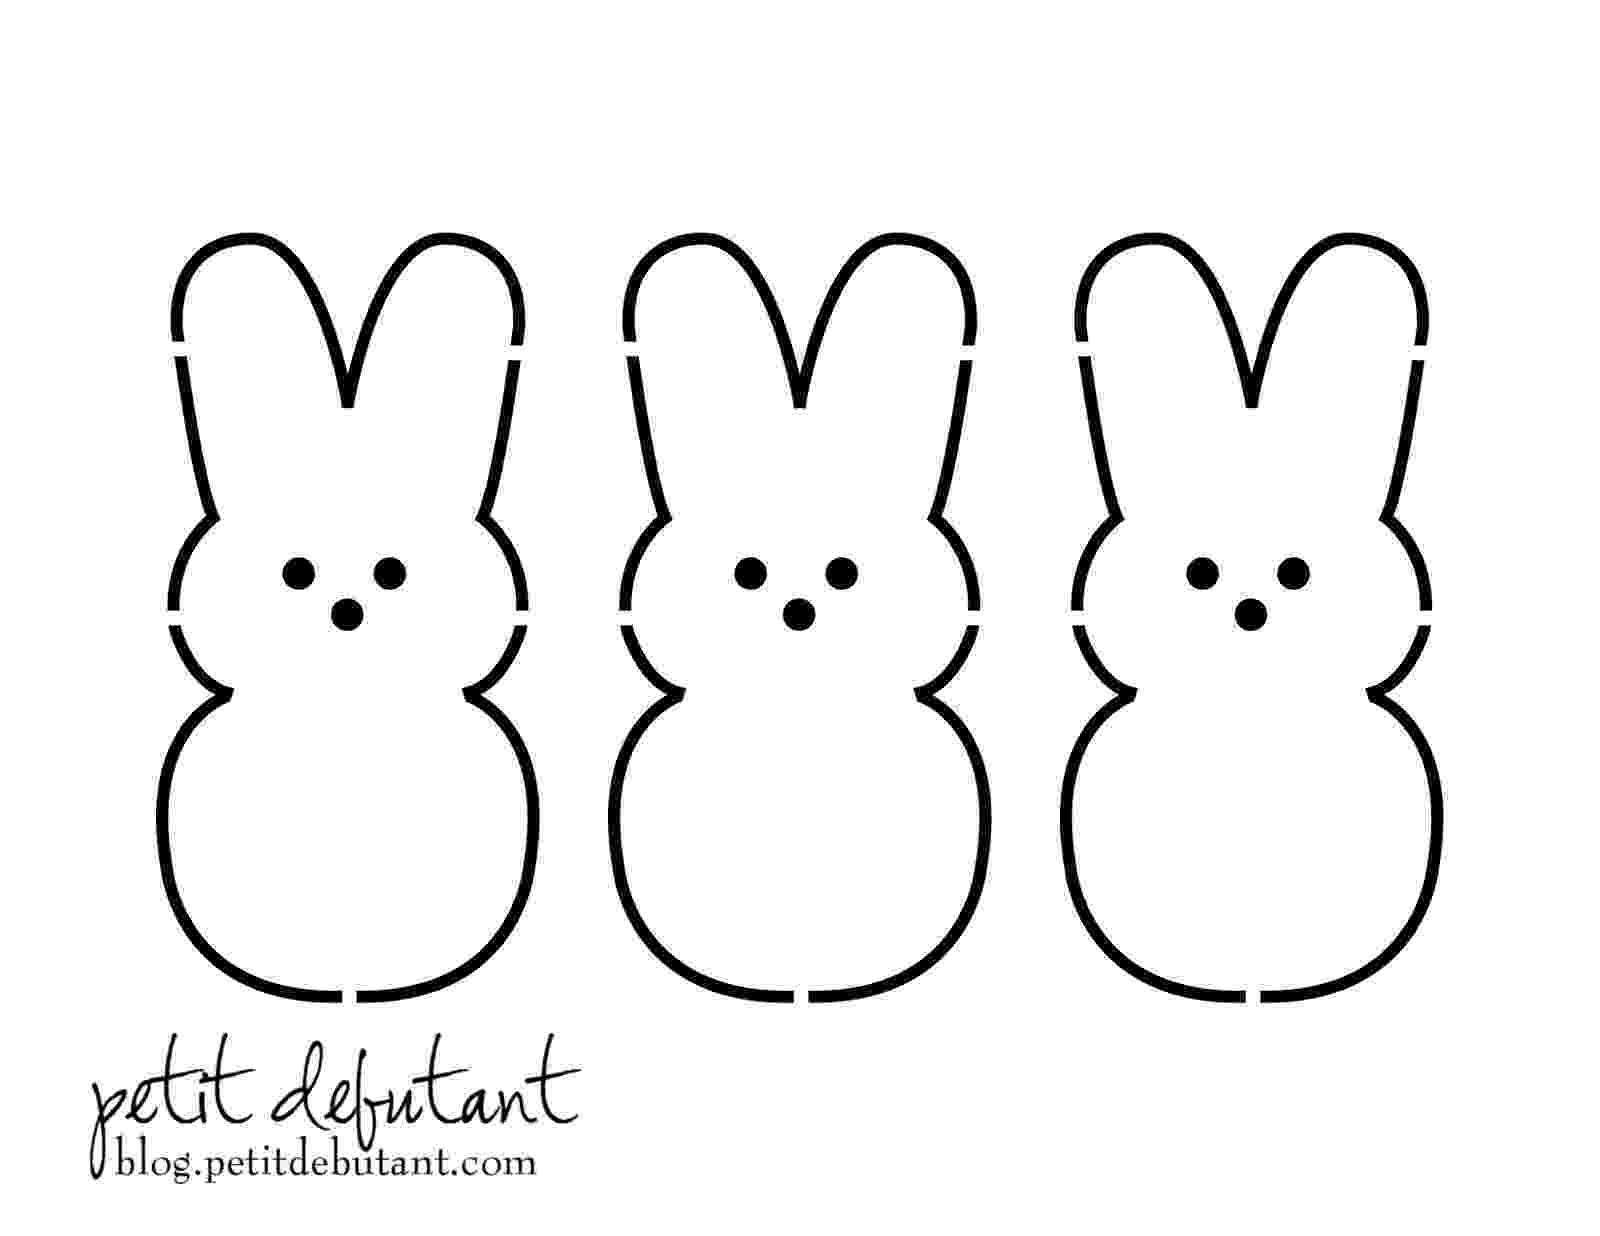 printable easter bunny easter colouring easter bunny paper craft printable activity bunny easter printable